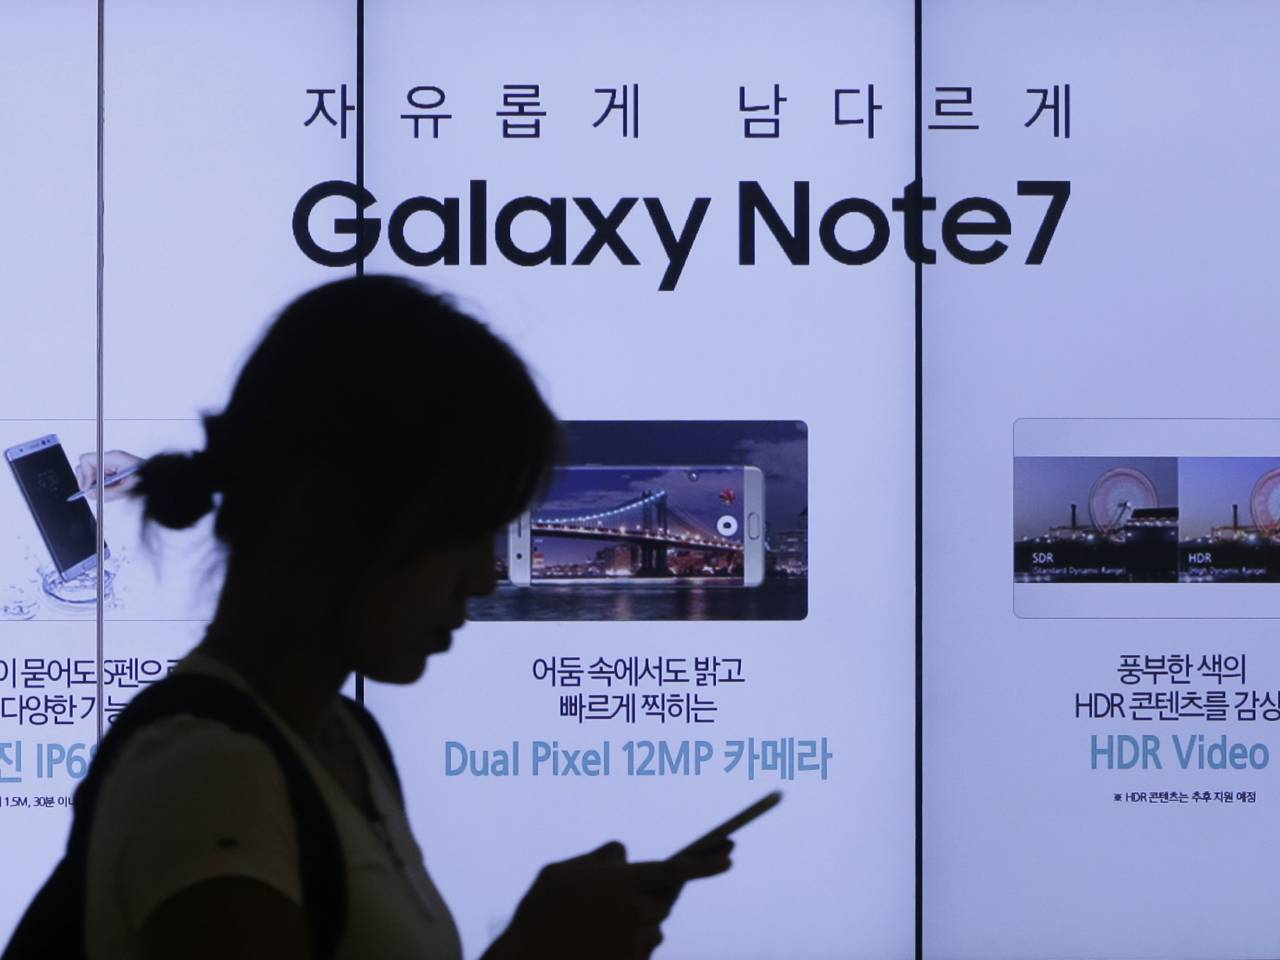 Samsung To Announce Note 7 Investigation Results On Jan 23